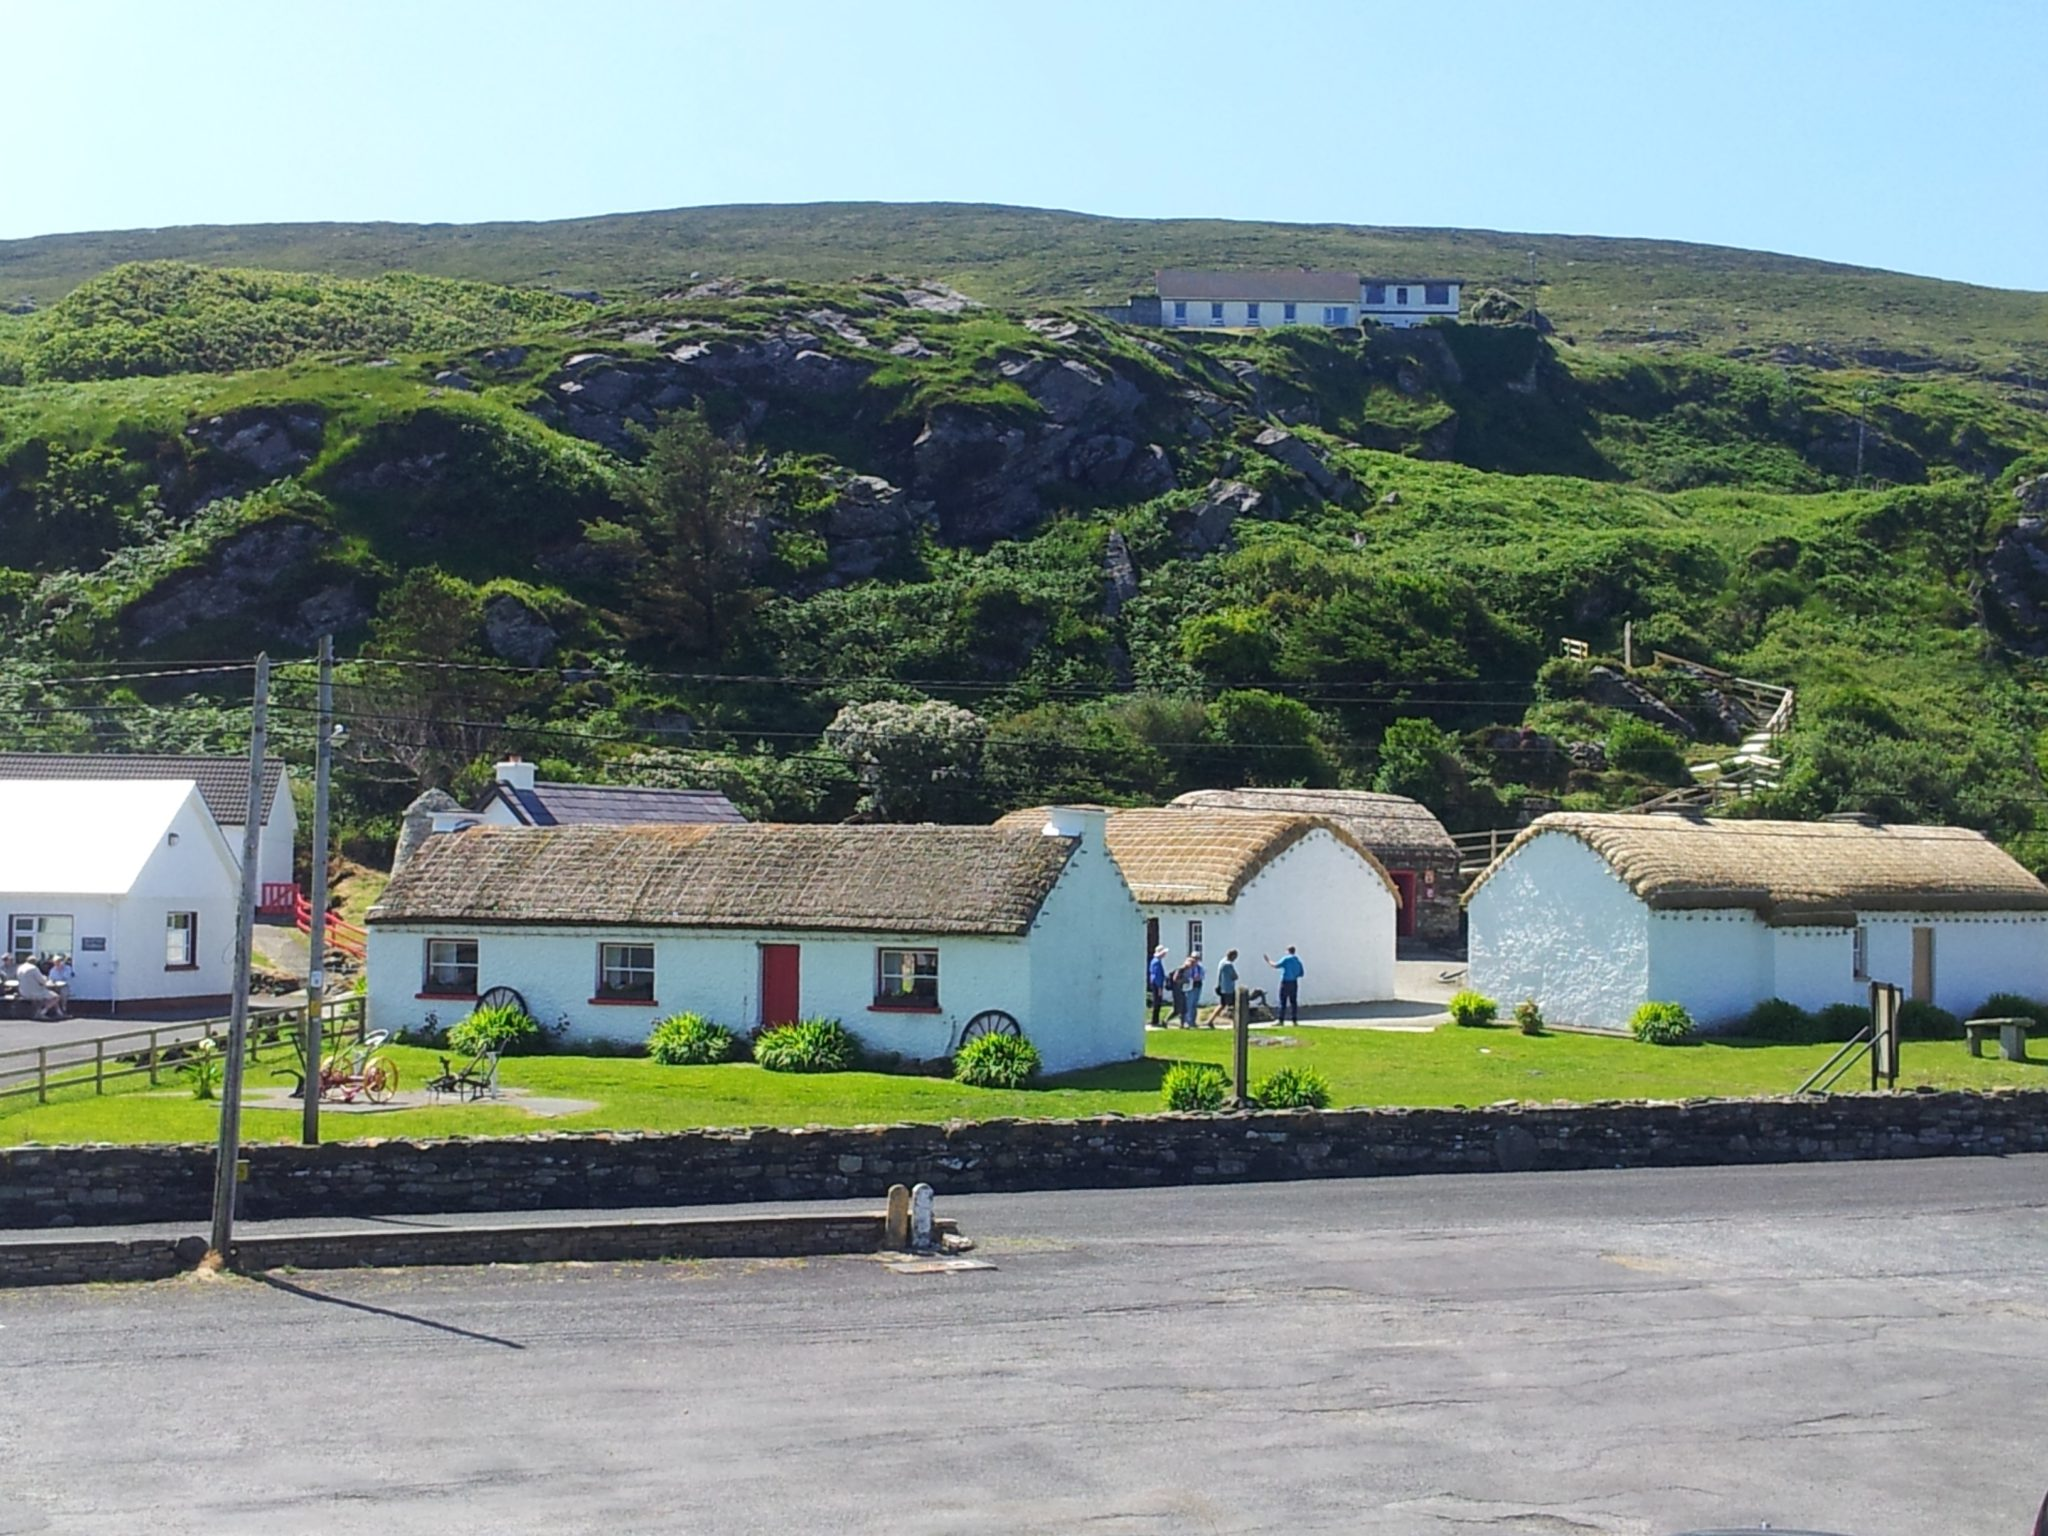 Traditional Cottages in the Glencolmcille Folk Museum. Restored as a museum and tourist attraction